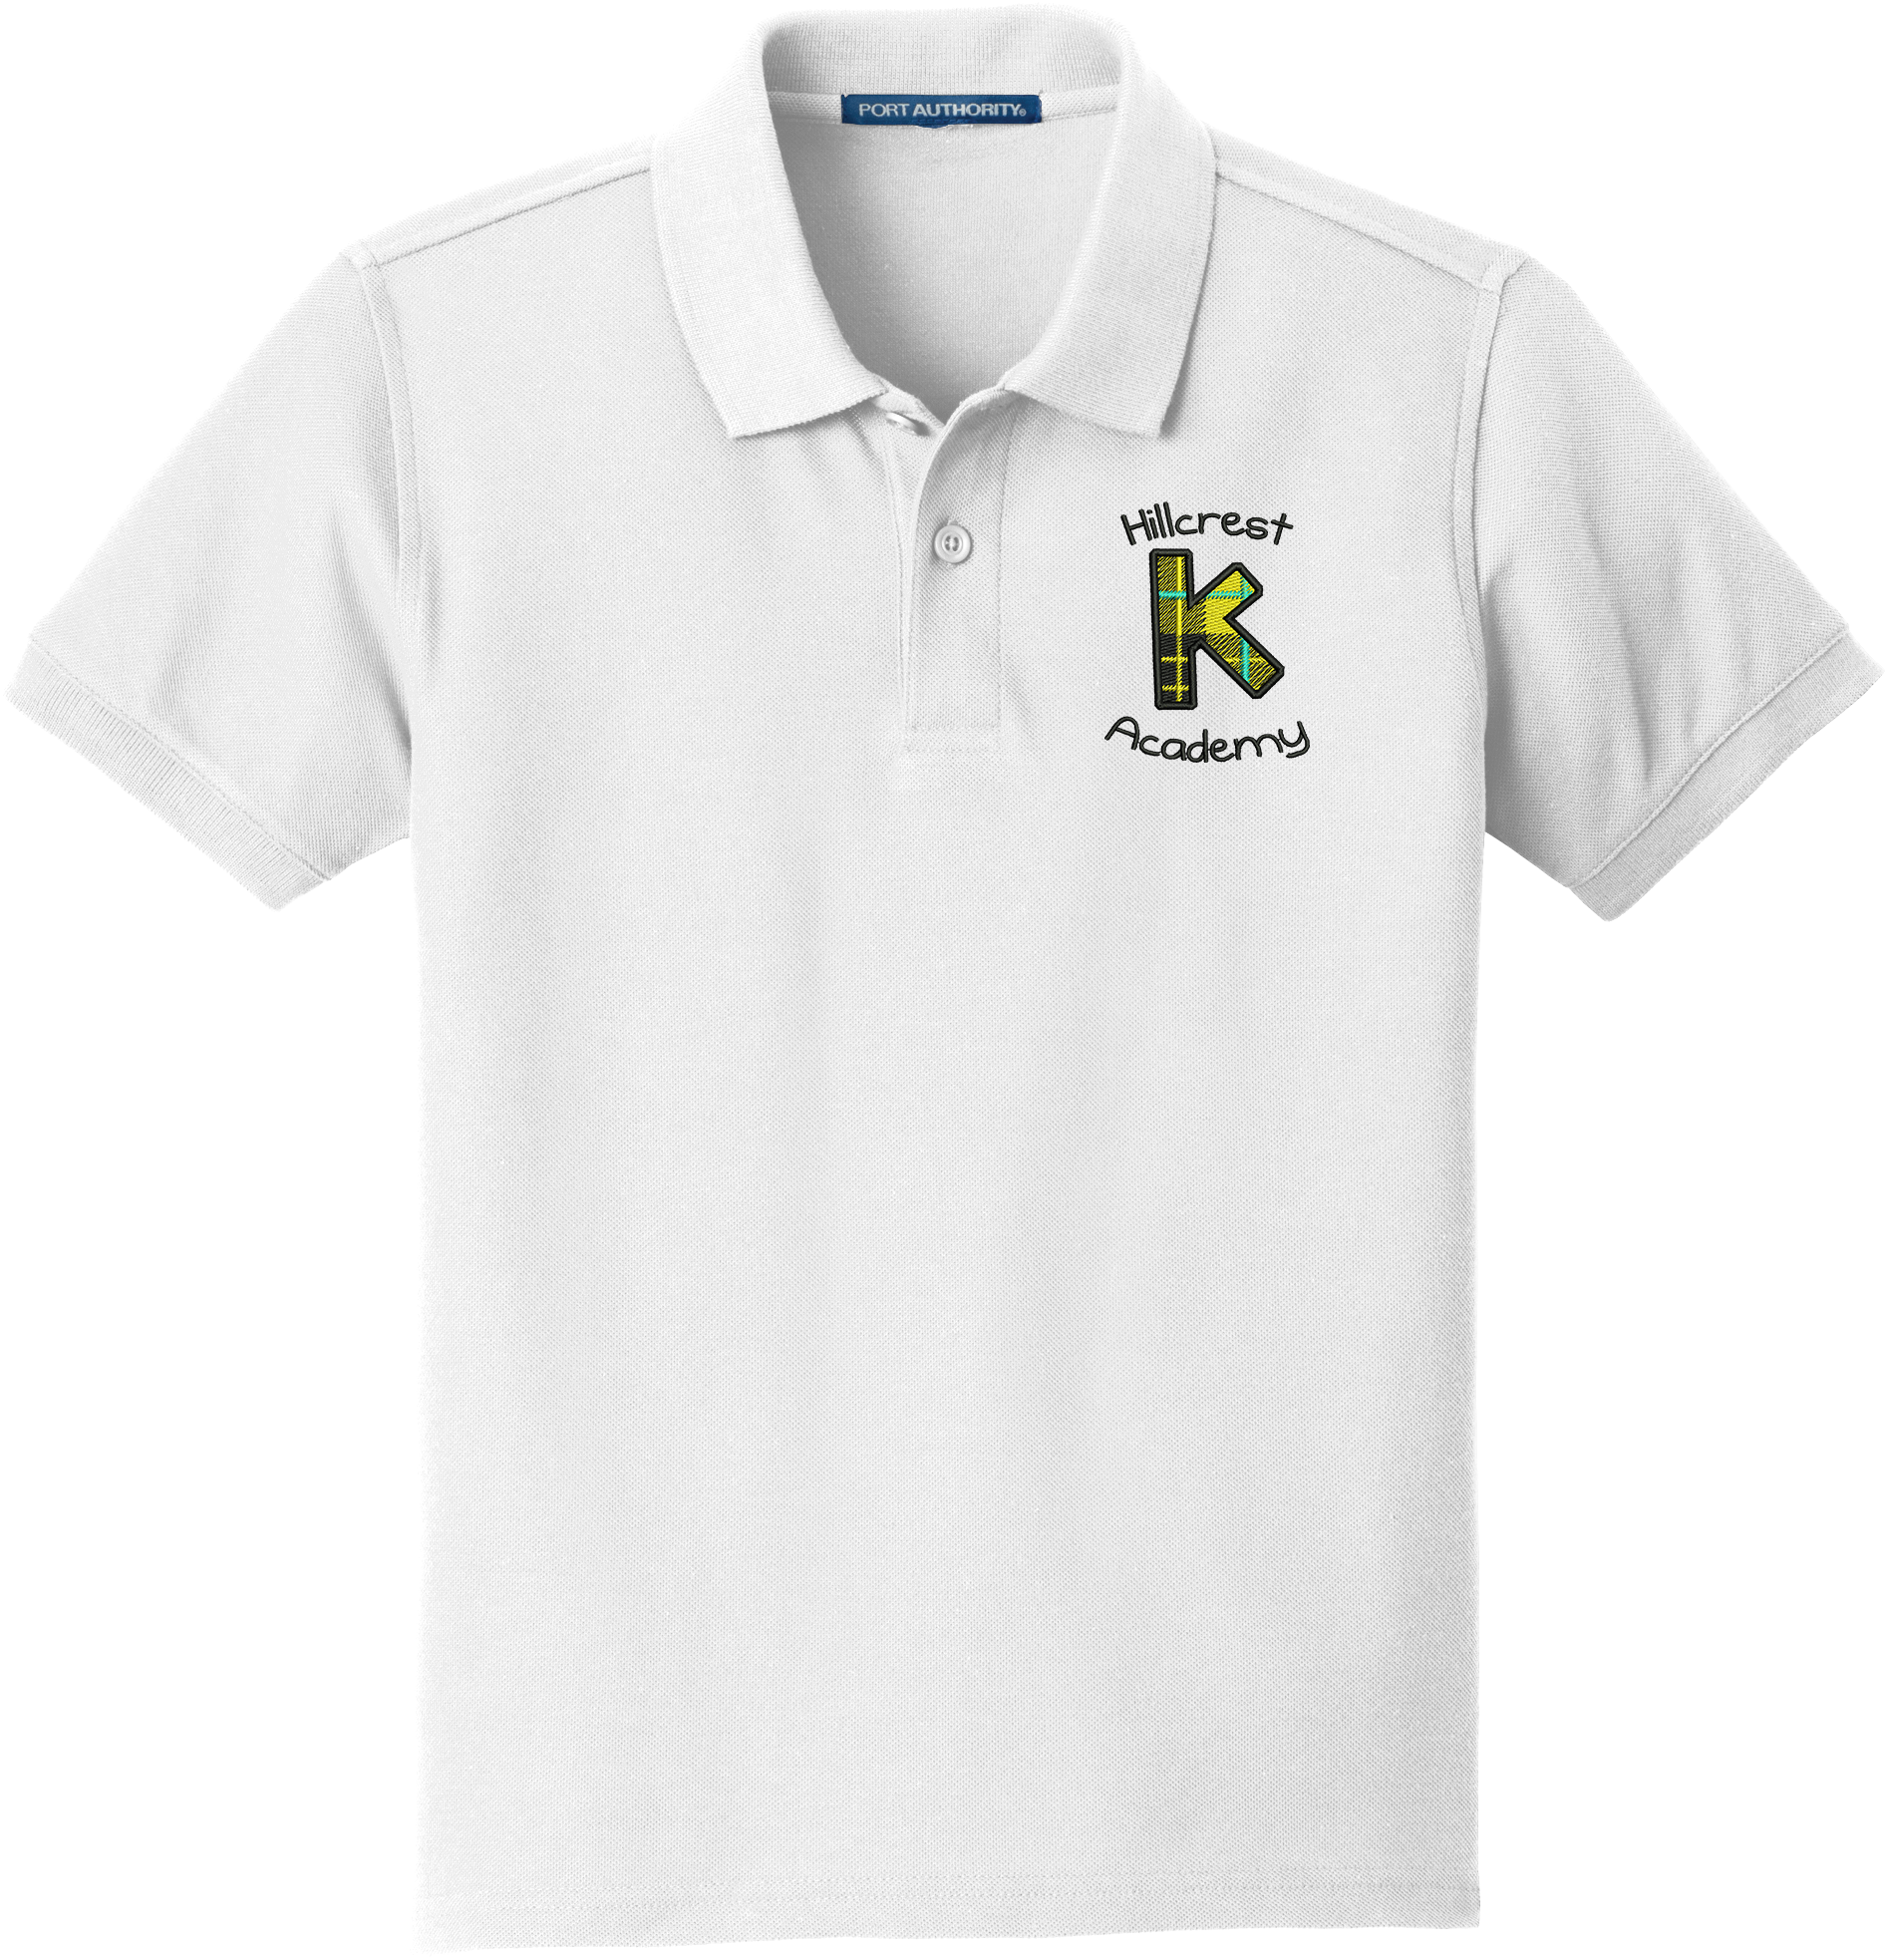 Kindergarten (K) Academy (Hillcrest)  Youth  Classic Pique Polo - WHITE